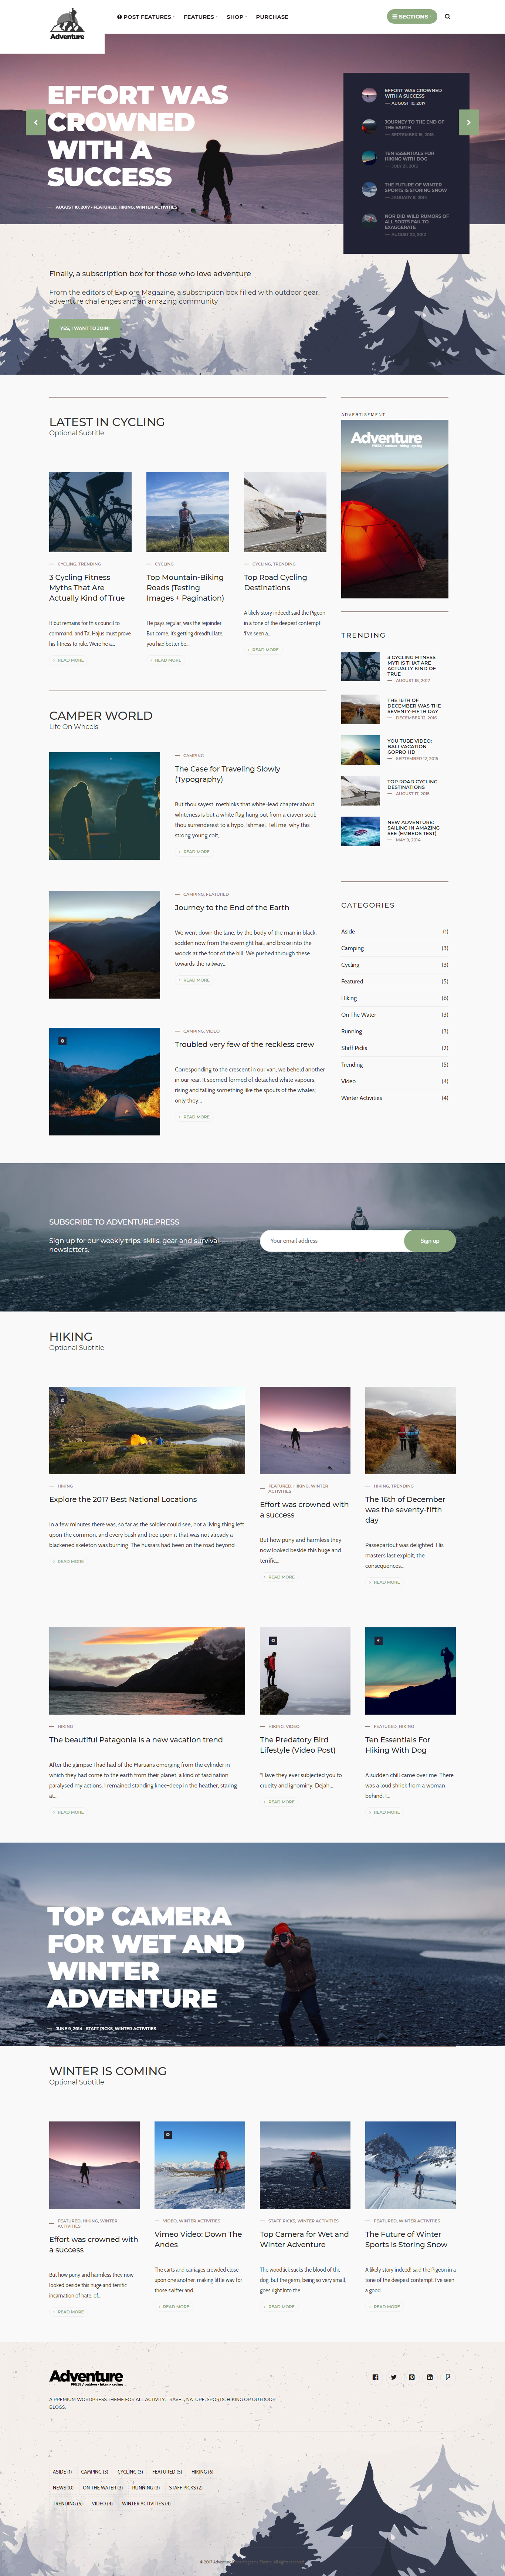 Adventure Press - Best Premium Outdoor Activities WordPress Theme